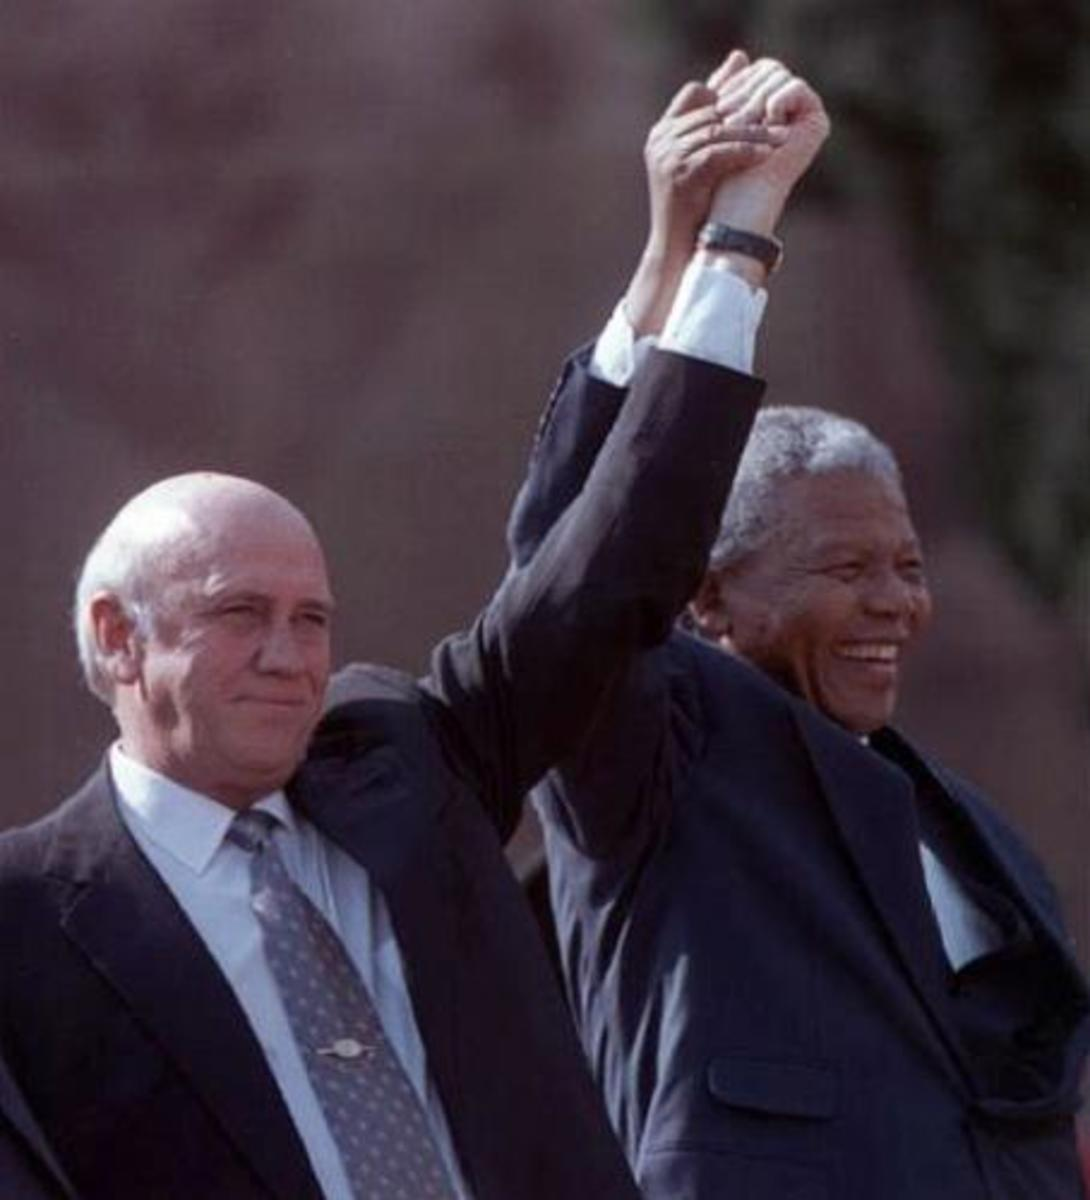 Nelson Mandela, along with the last president of the Apartheid regime, FW de Klerk, won the 1993 Nobel Peace Prize